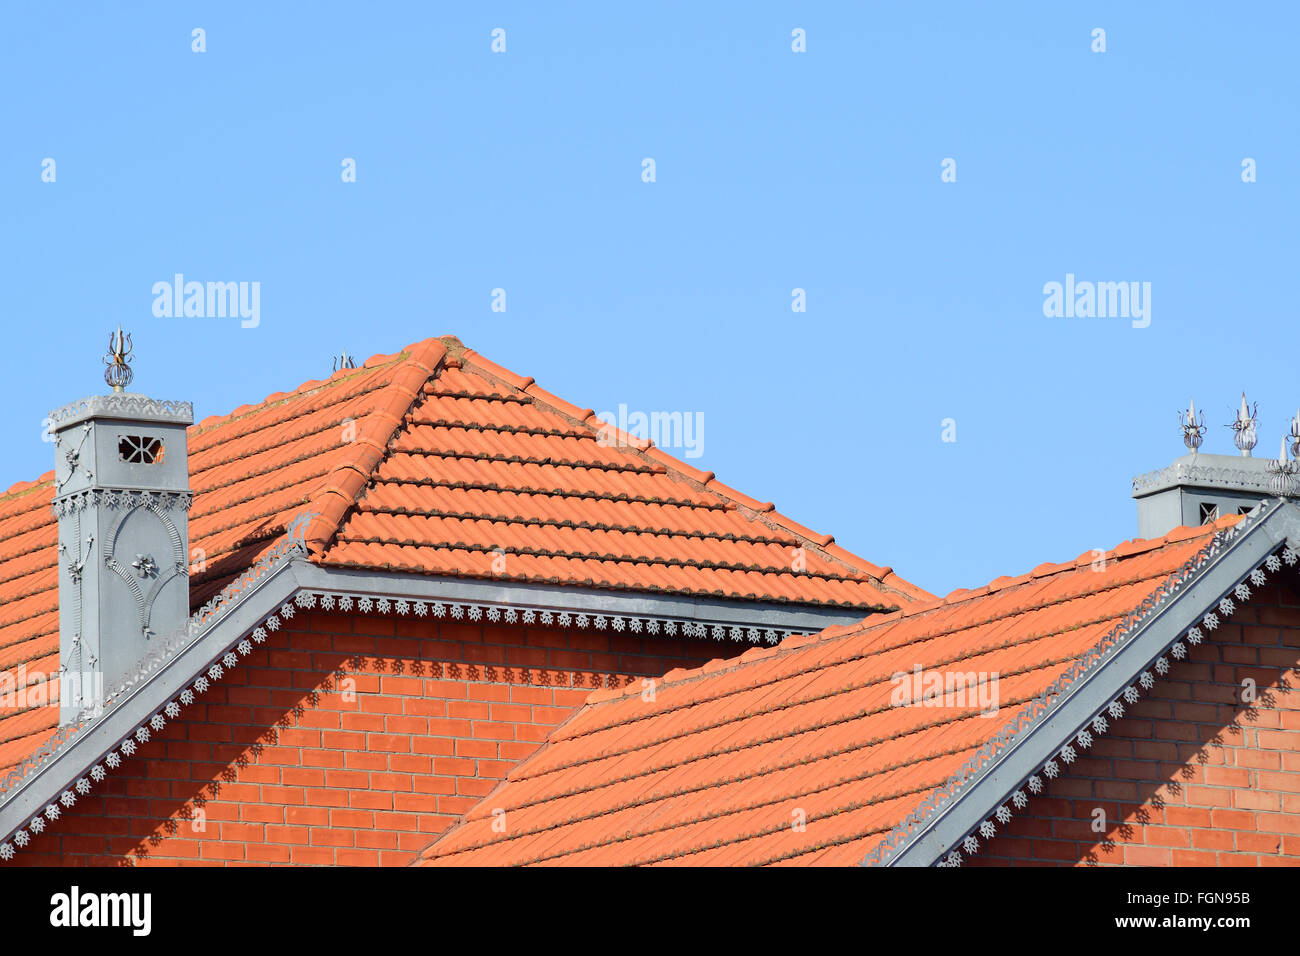 Stock Photo   The House With A Roof Of Tiles. The House With Gables,  Windows And Tiled Roof, Equipped With Overflow